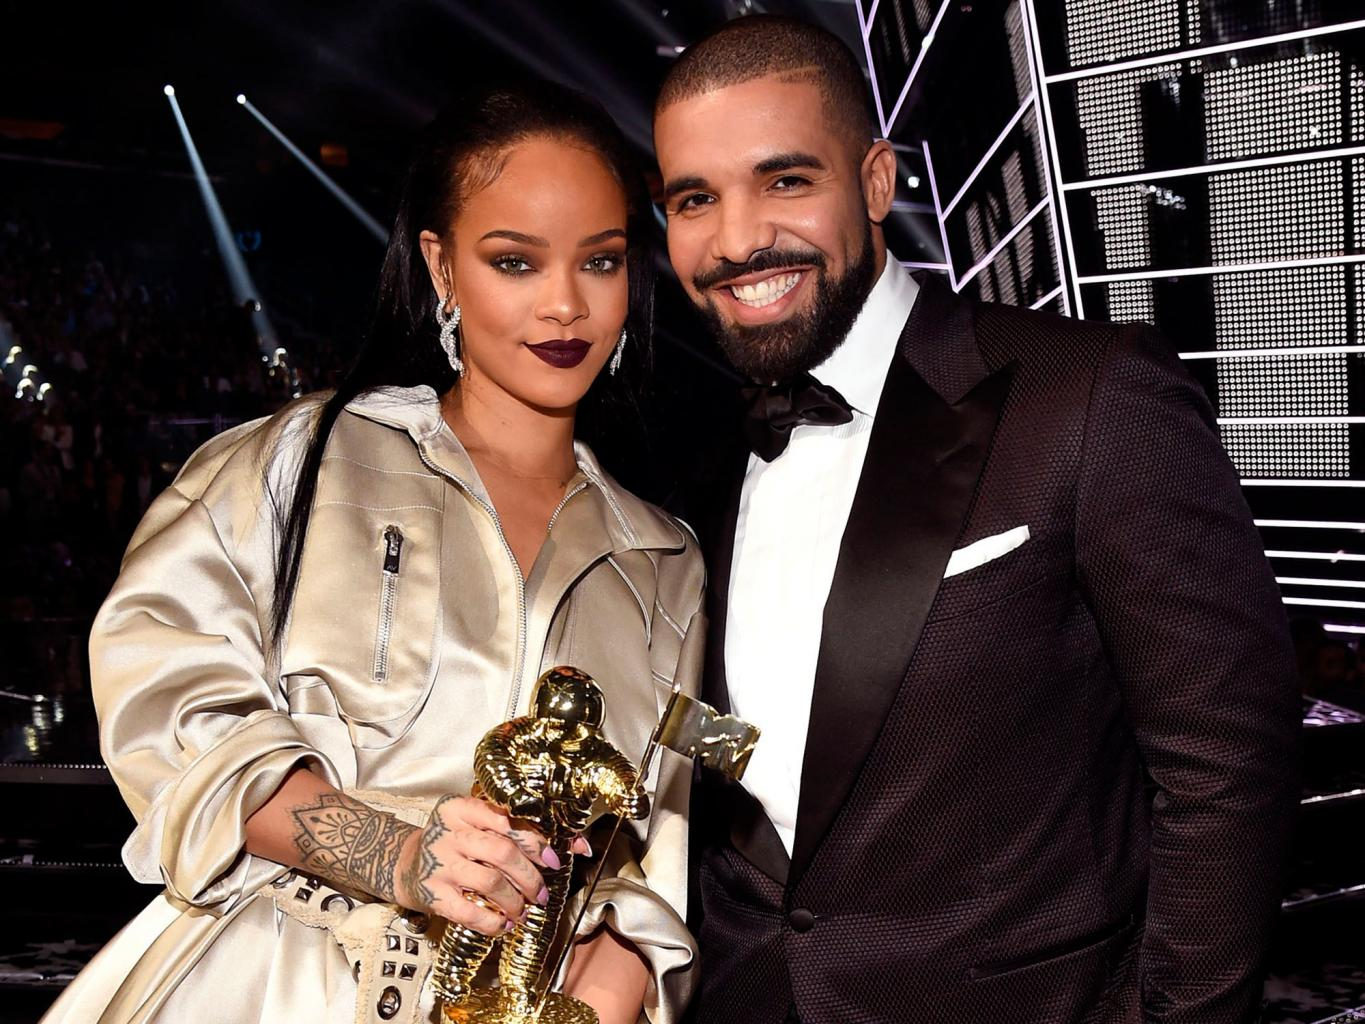 Drake Tells Rihanna She's 'Somebody I Have a Lot of Love For' on Her 29th Birthday